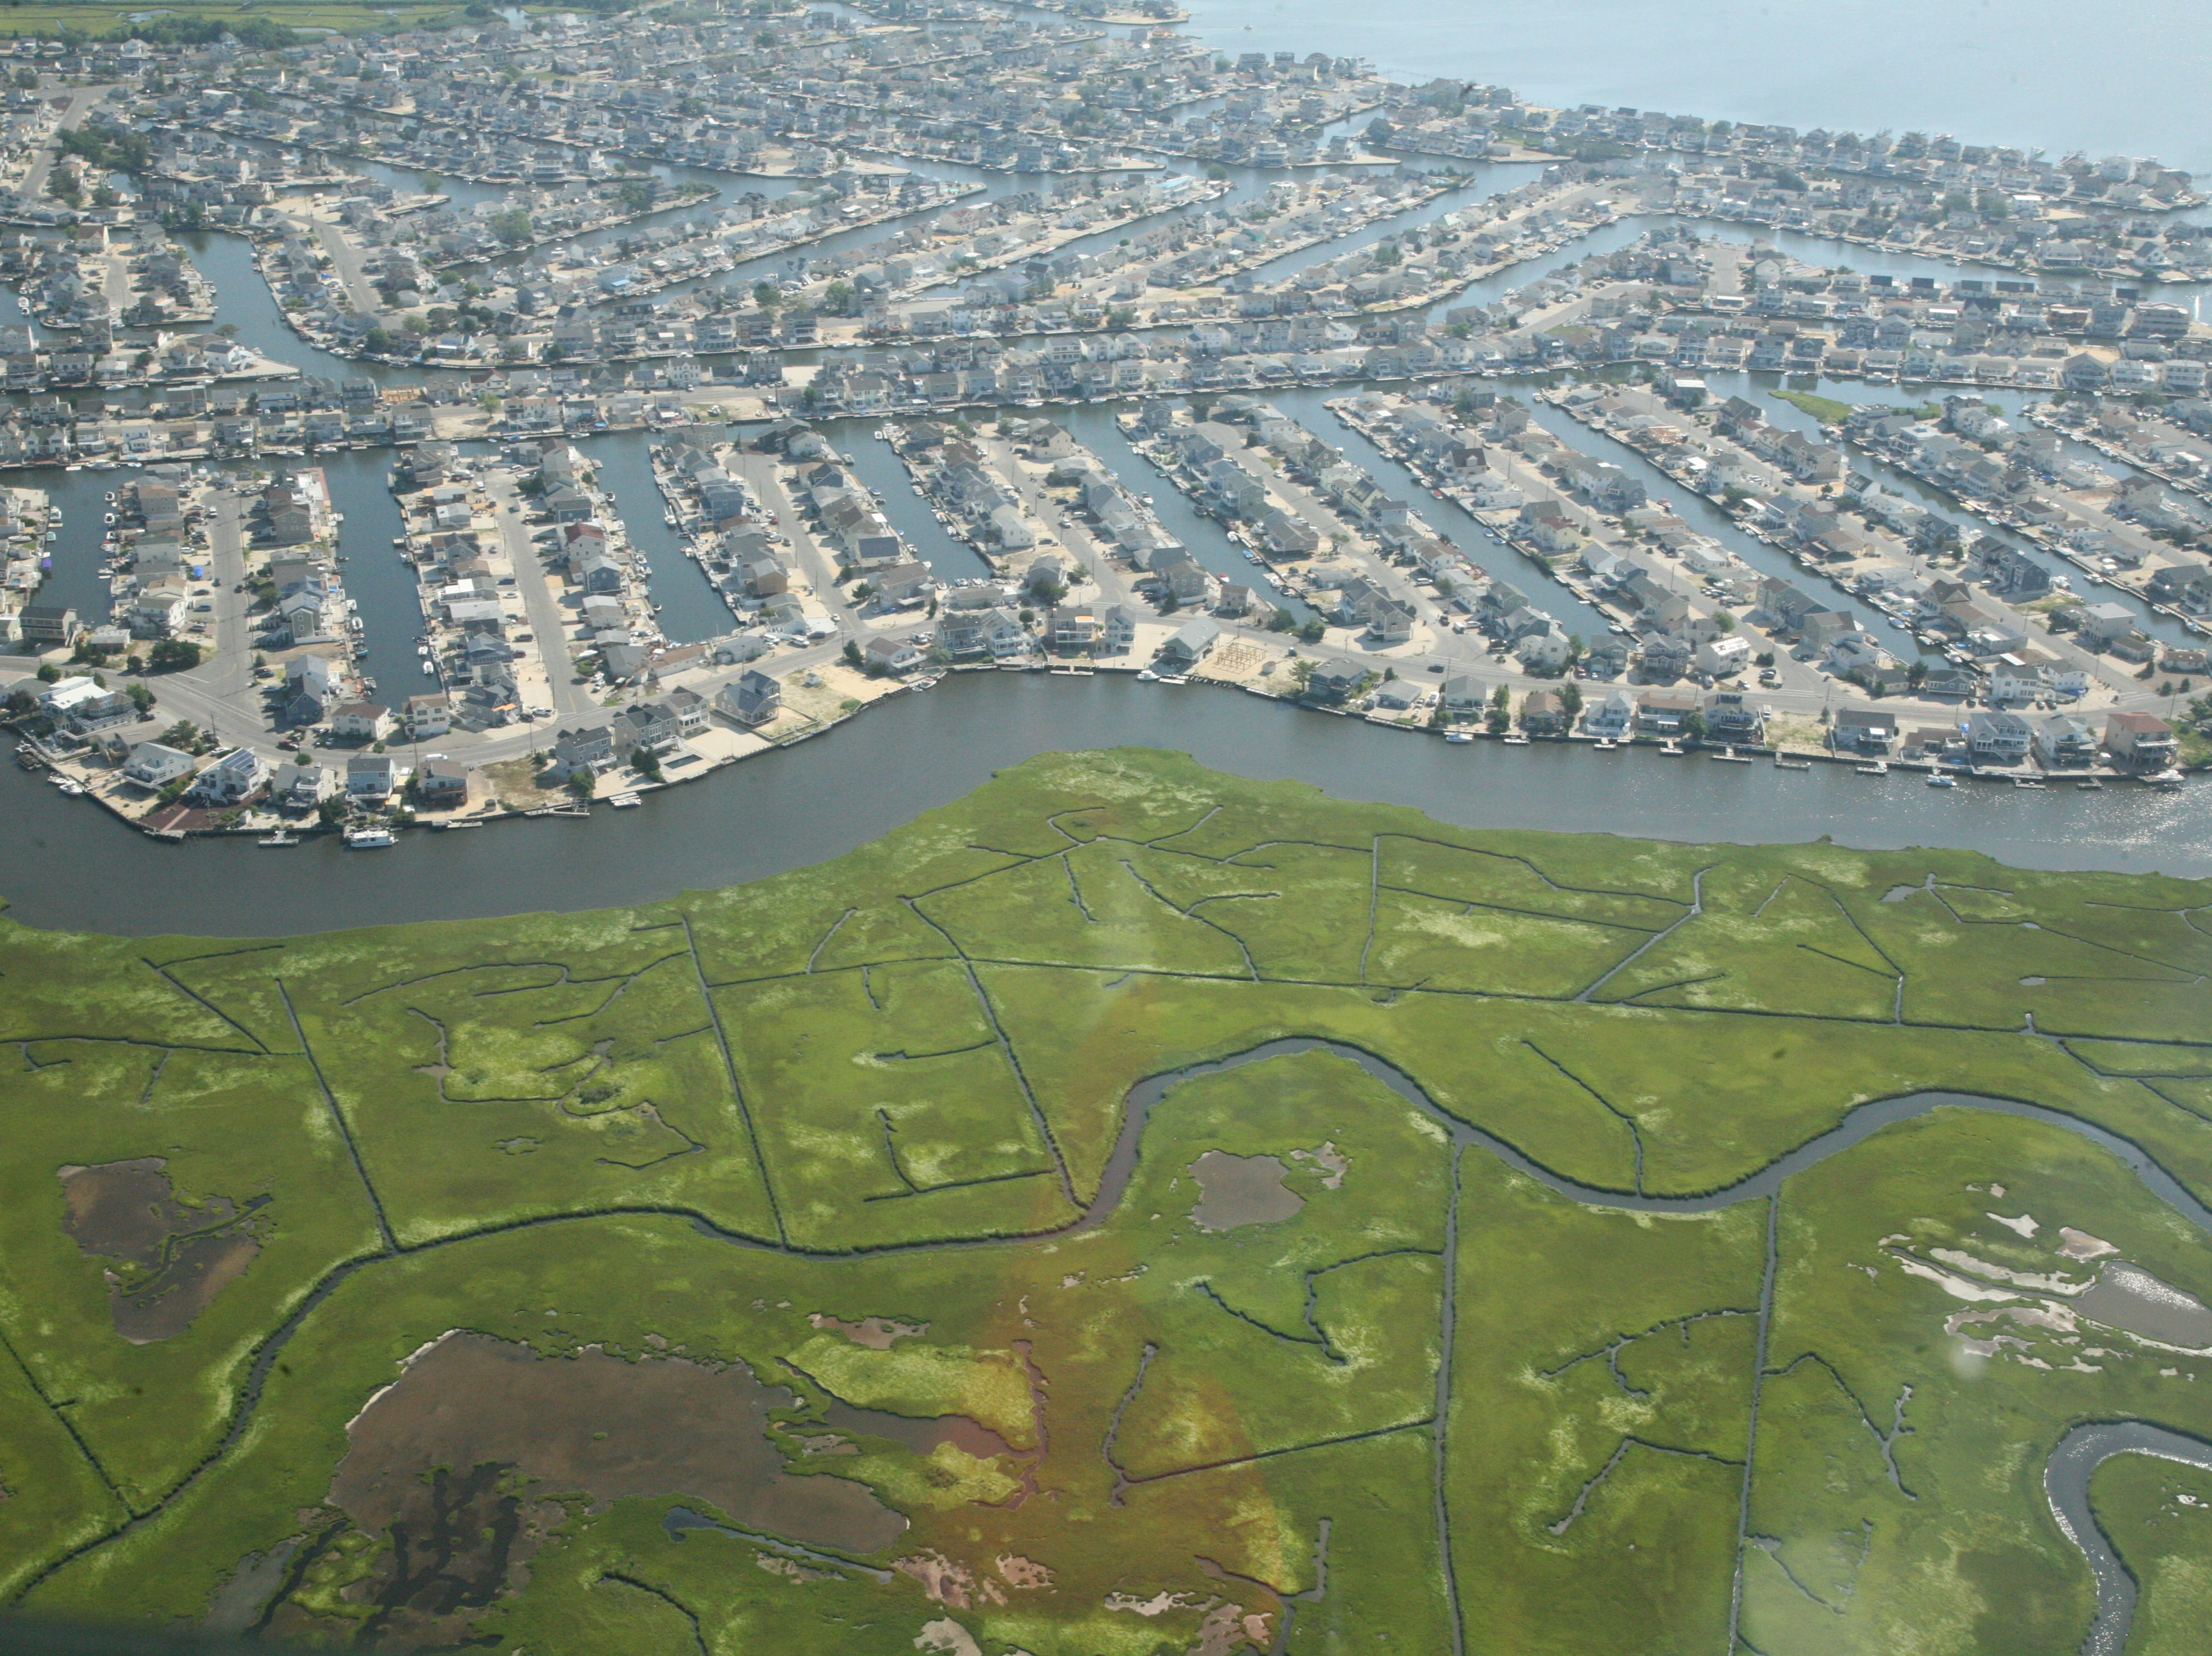 Beach Haven West, a 1950s development in Stafford Township, juts into the salt marsh along  Mill Creek and Manahawkin Bay.